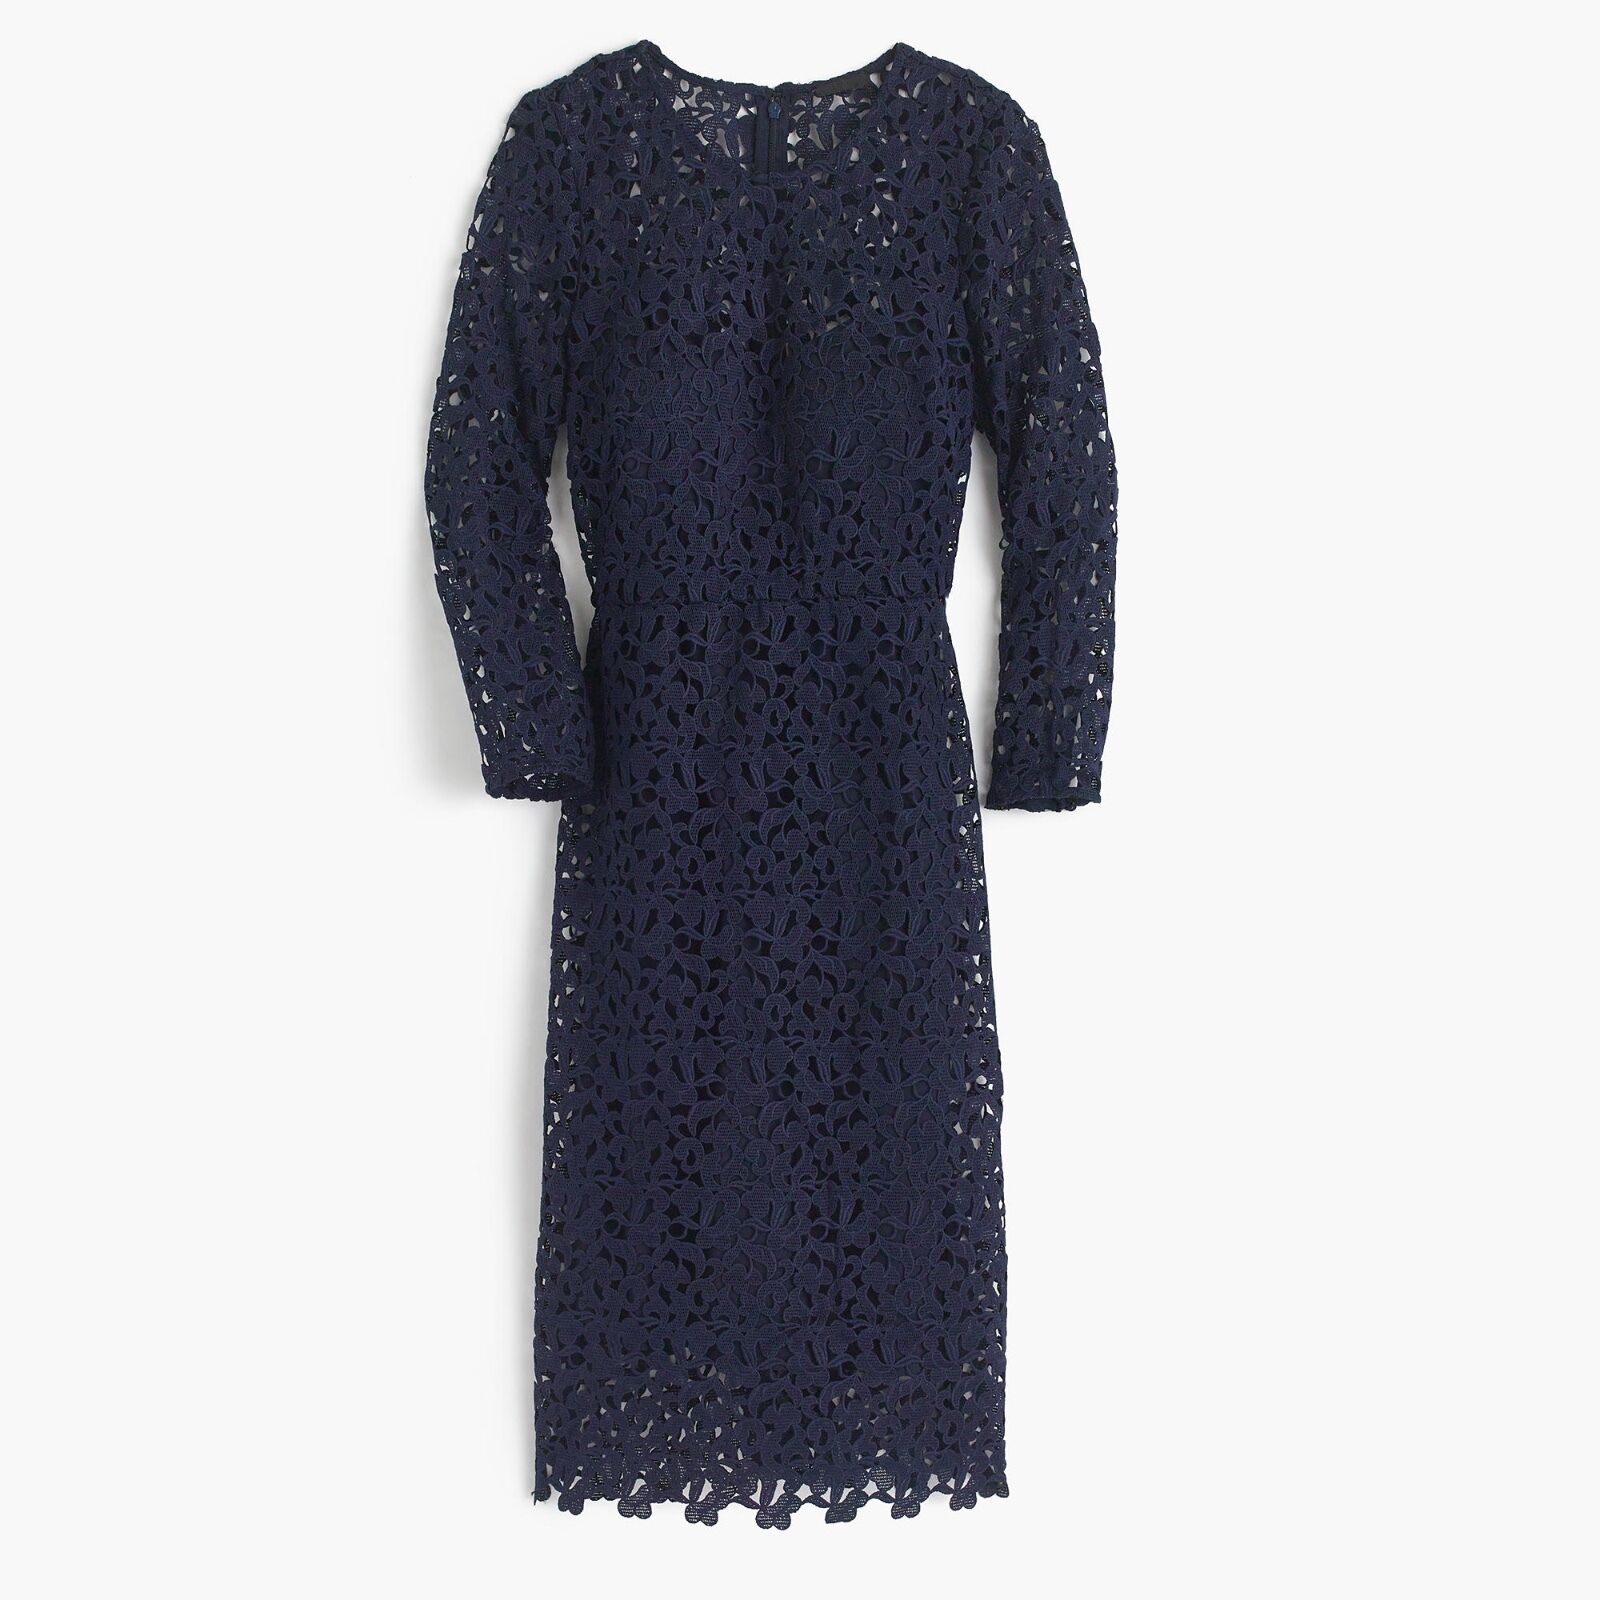 NWT NWT NWT J.Crew Collection Lace Sheath Dress Size 00 NAVY fee5b3